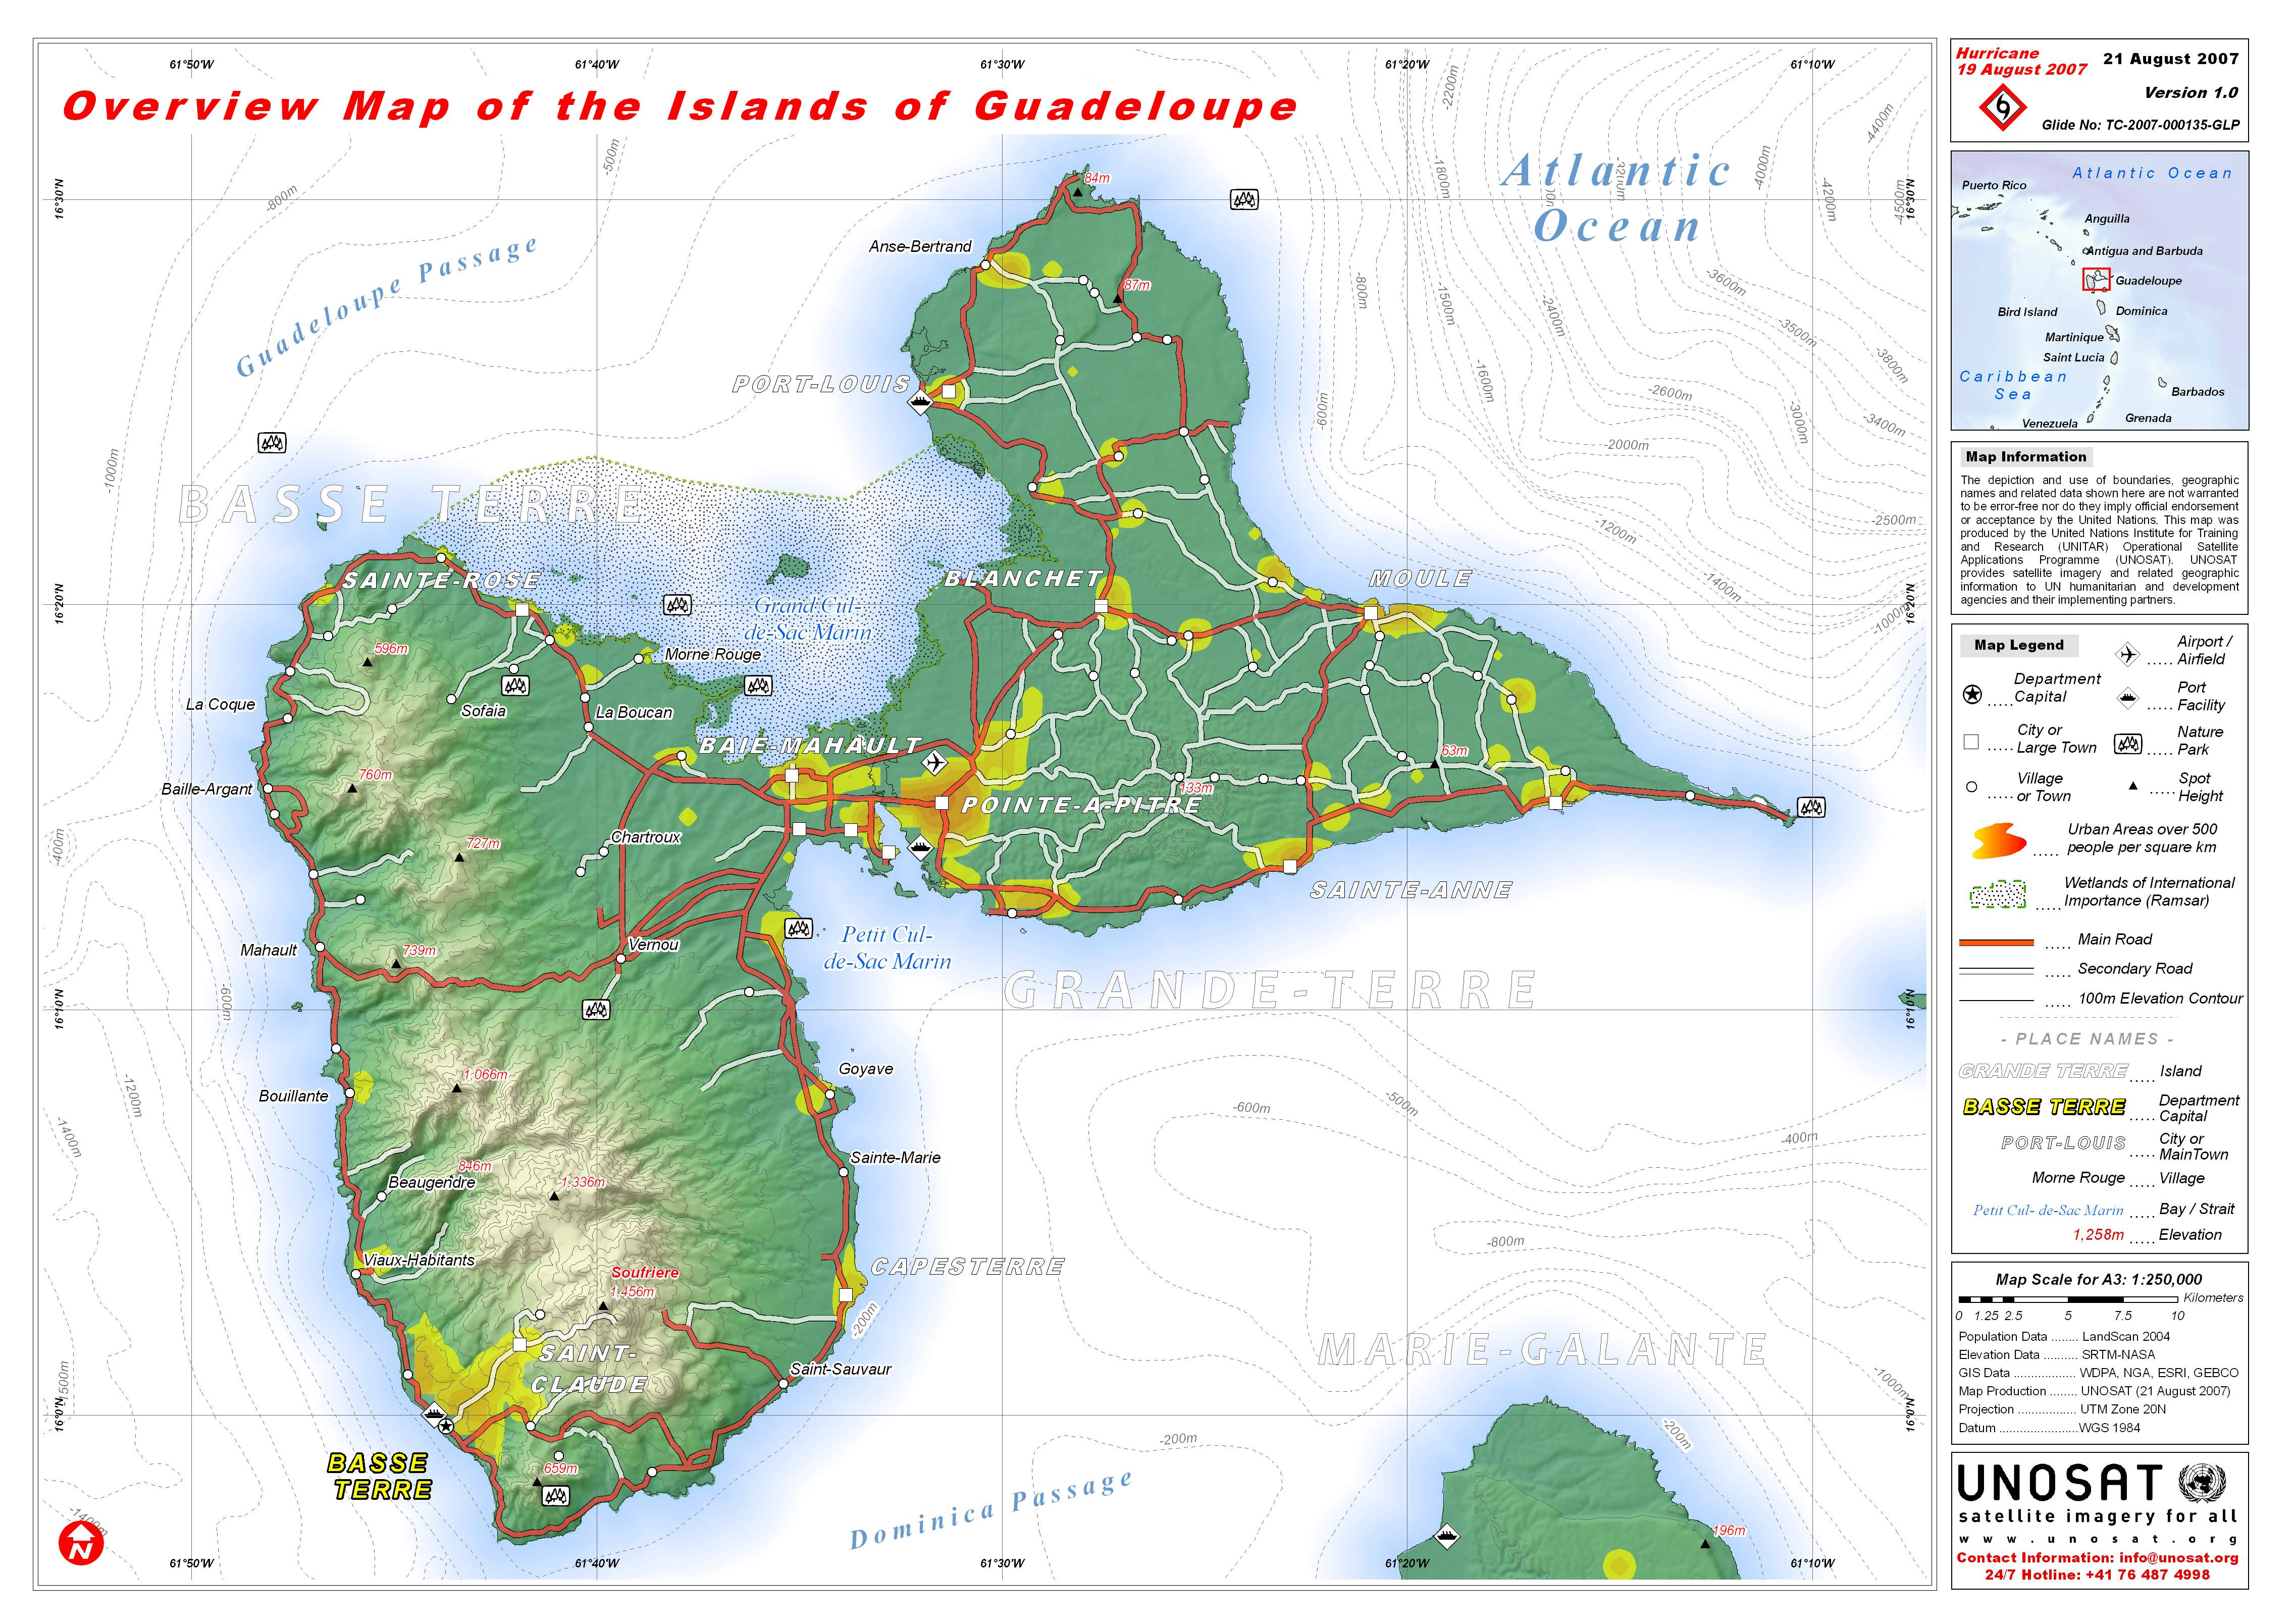 pdf (mb) . overview map of the islands of guadeloupe  unitar